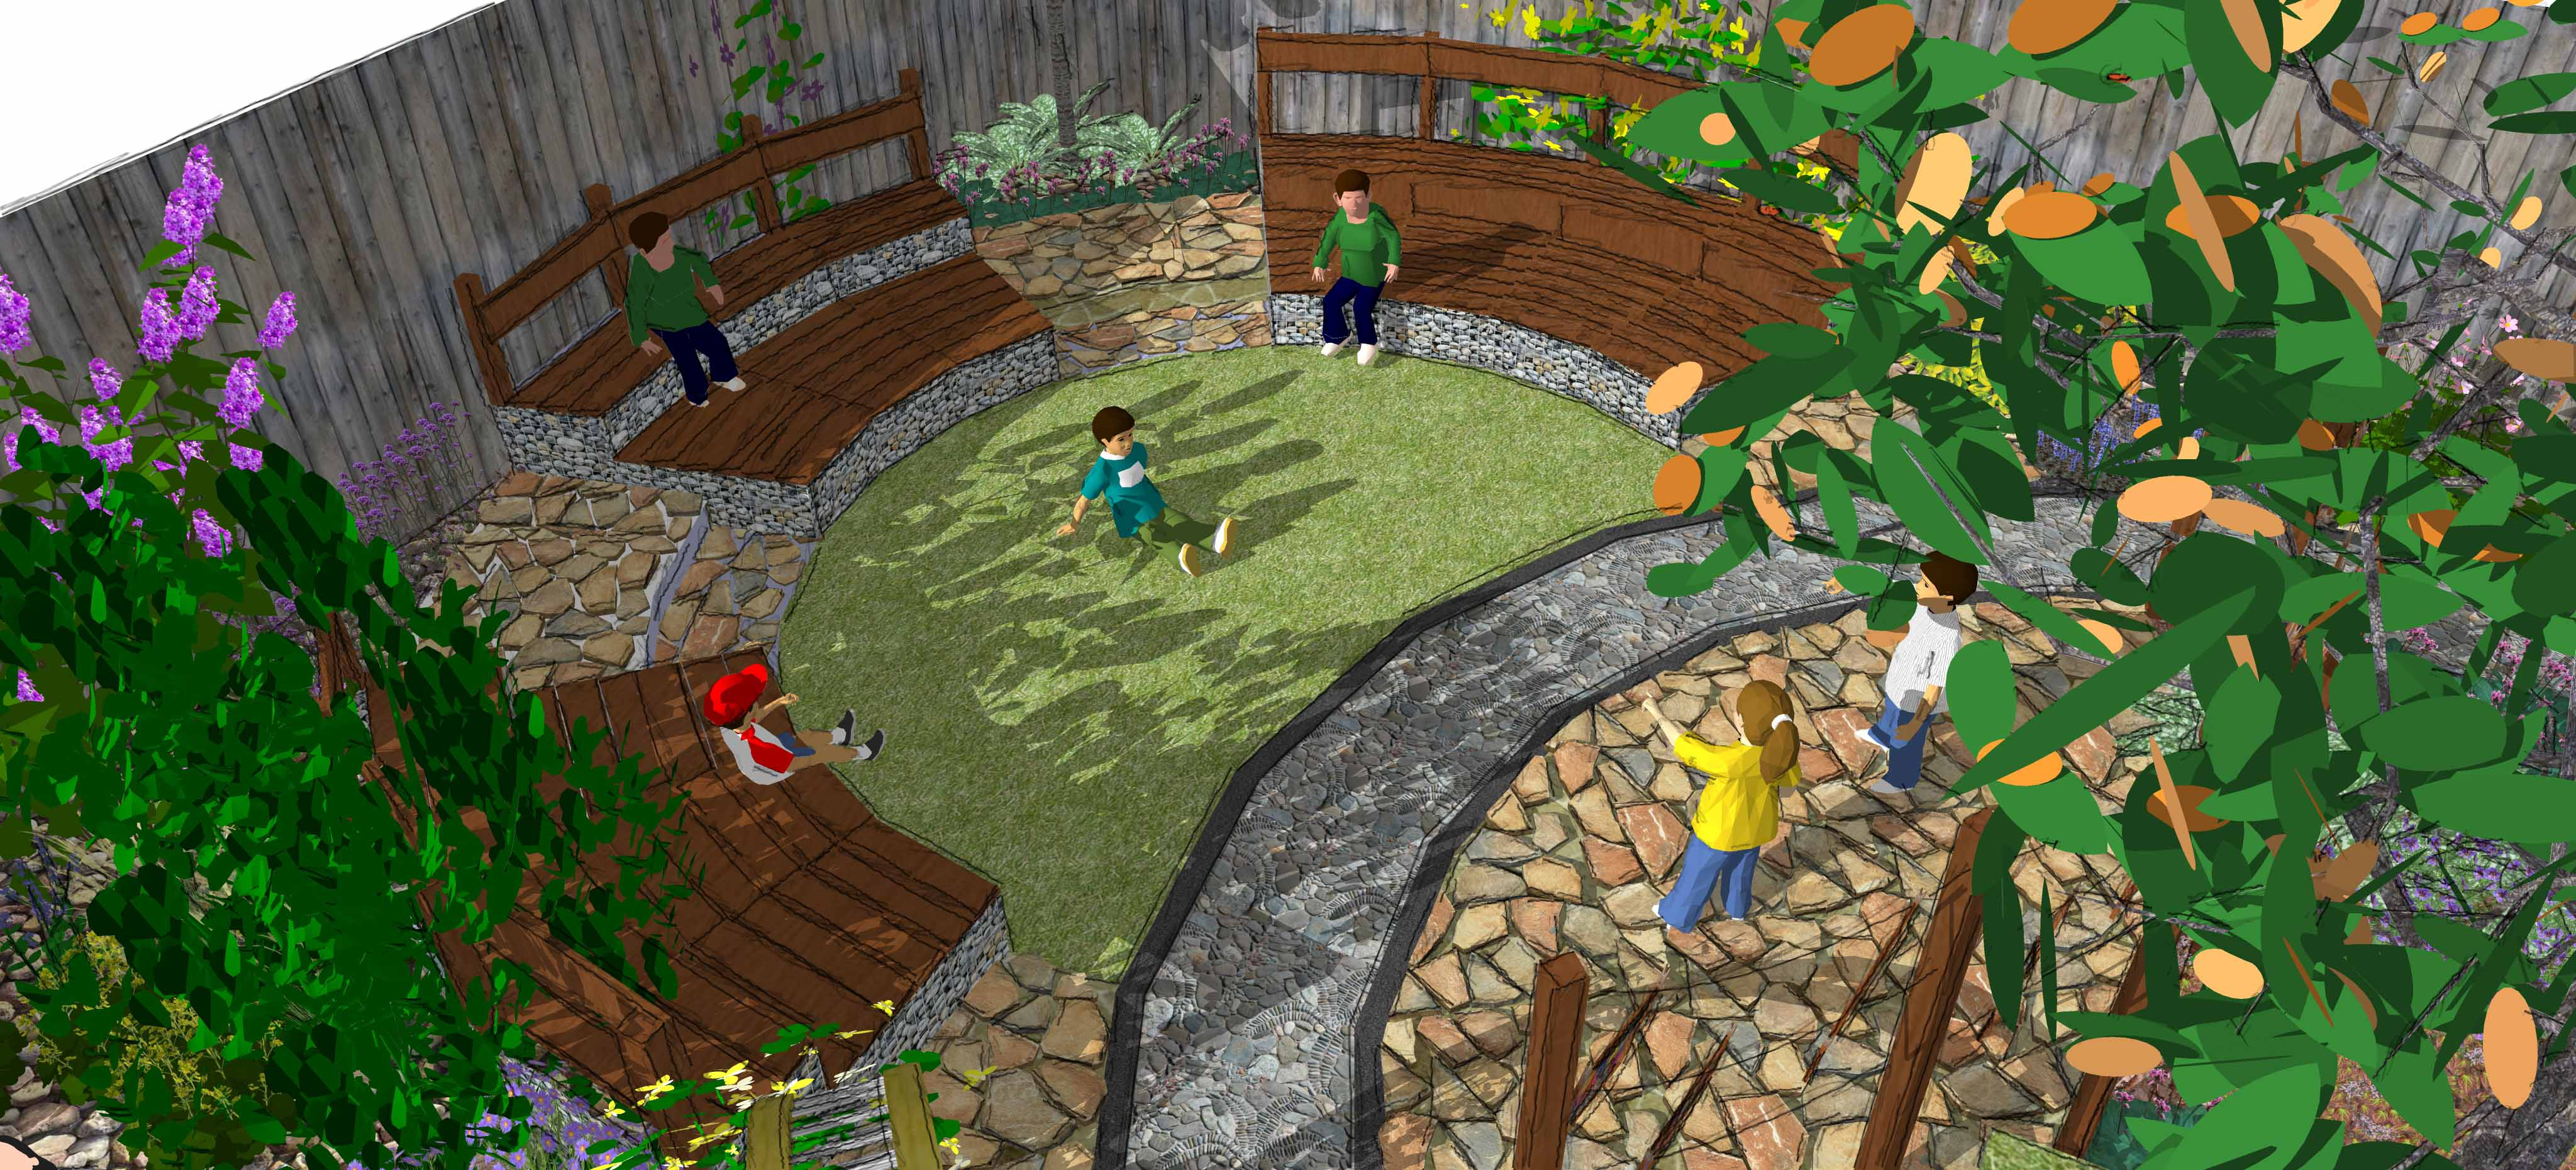 outdoor ampitheatre school garden design